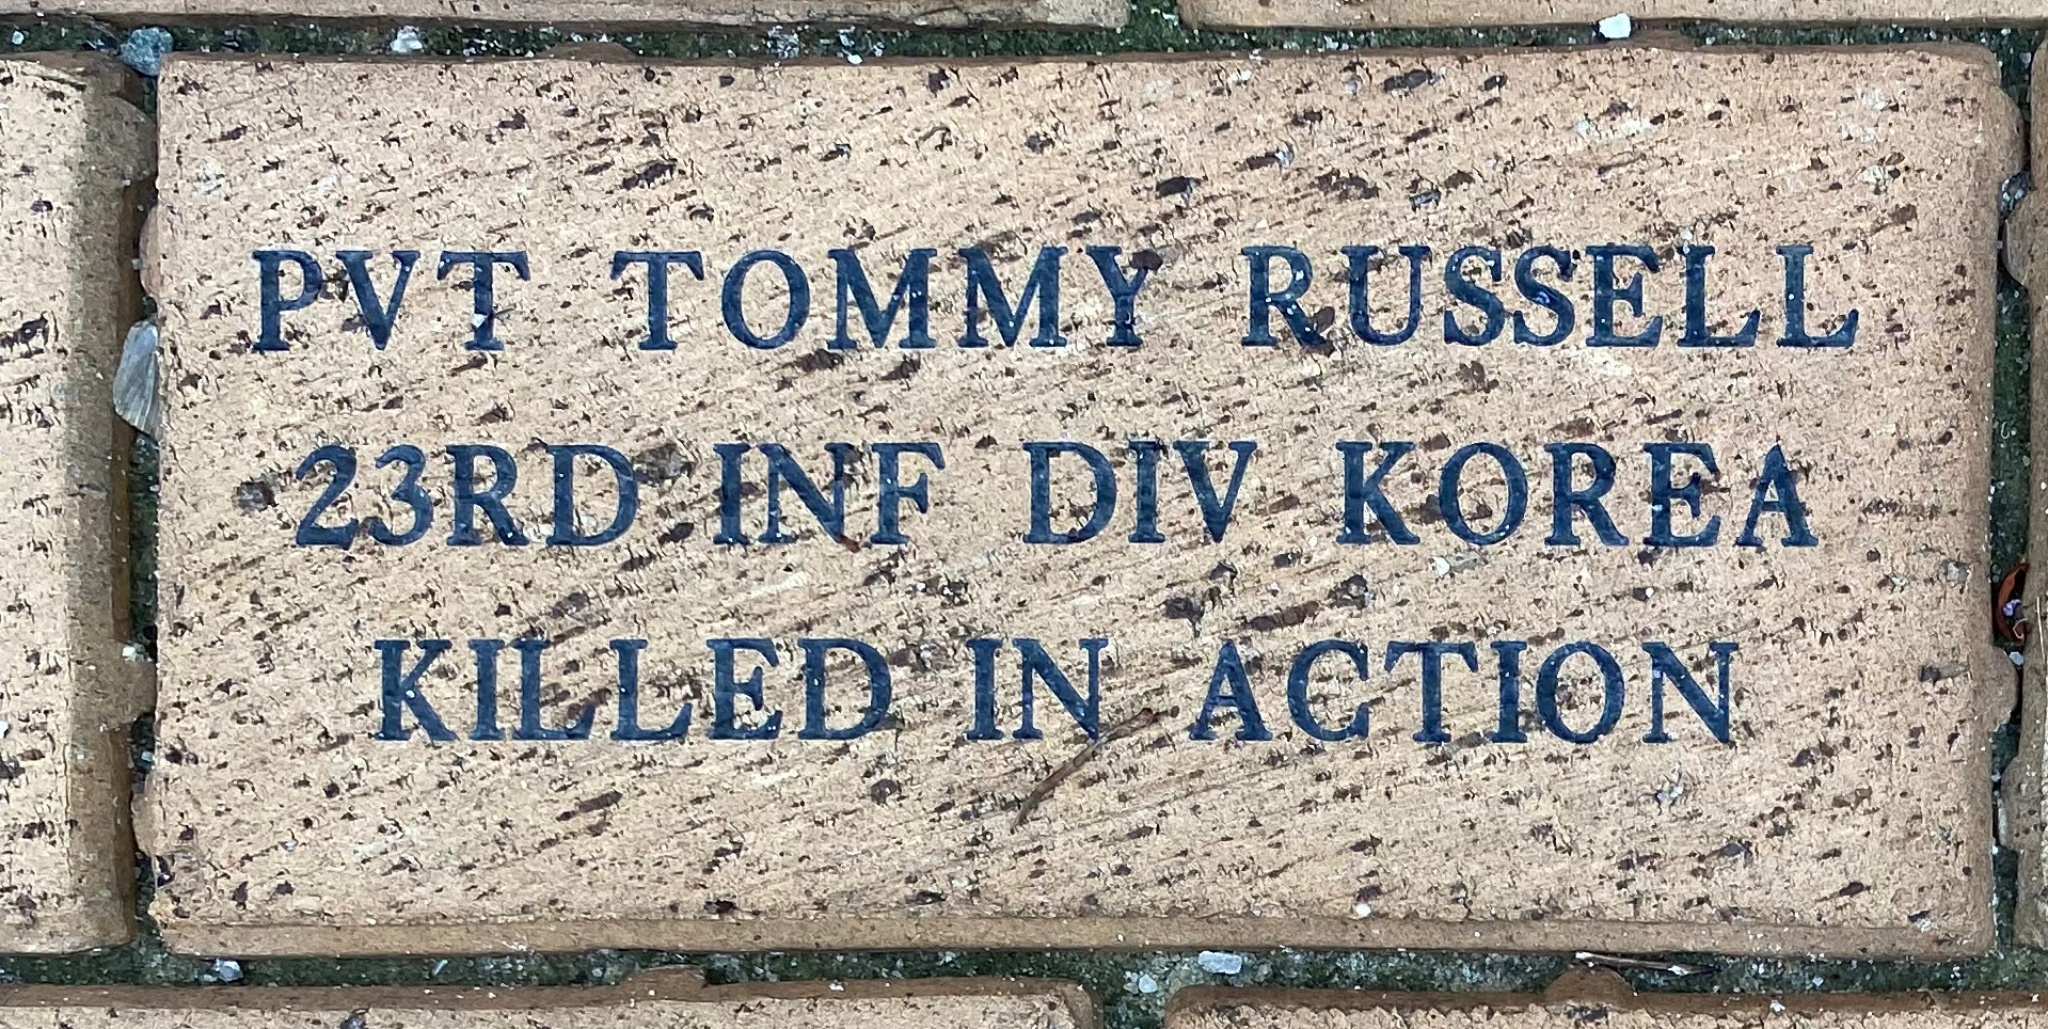 PVT TOMMY RUSSELL 23RD INF DIV KOREA KILLED IN ACTION